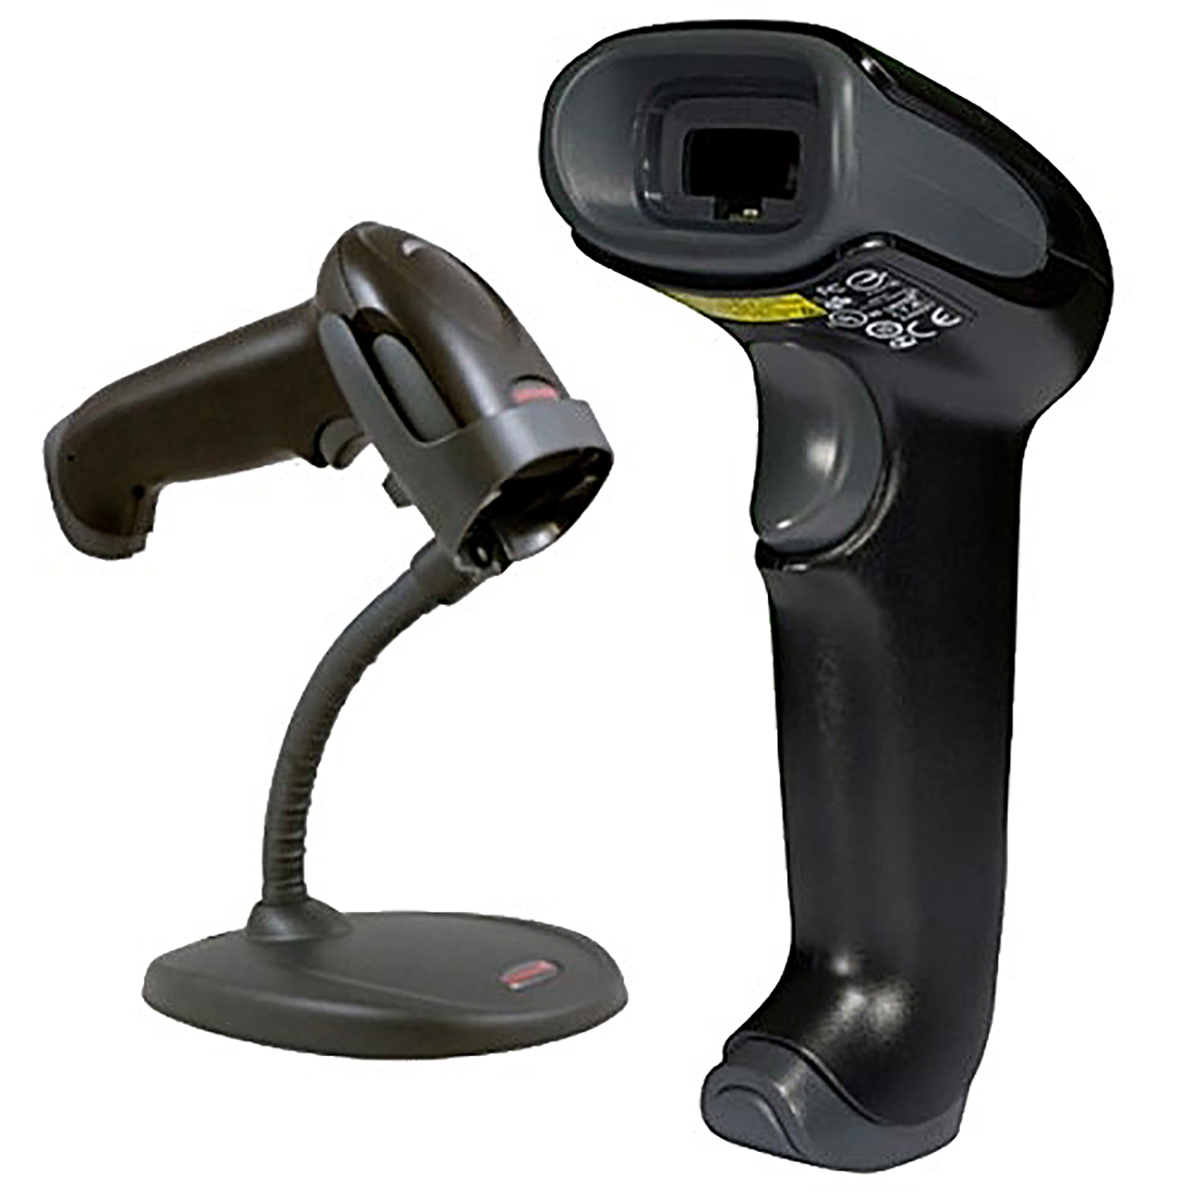 Honeywell Voyager 1250G Barcode Scanner with Stand